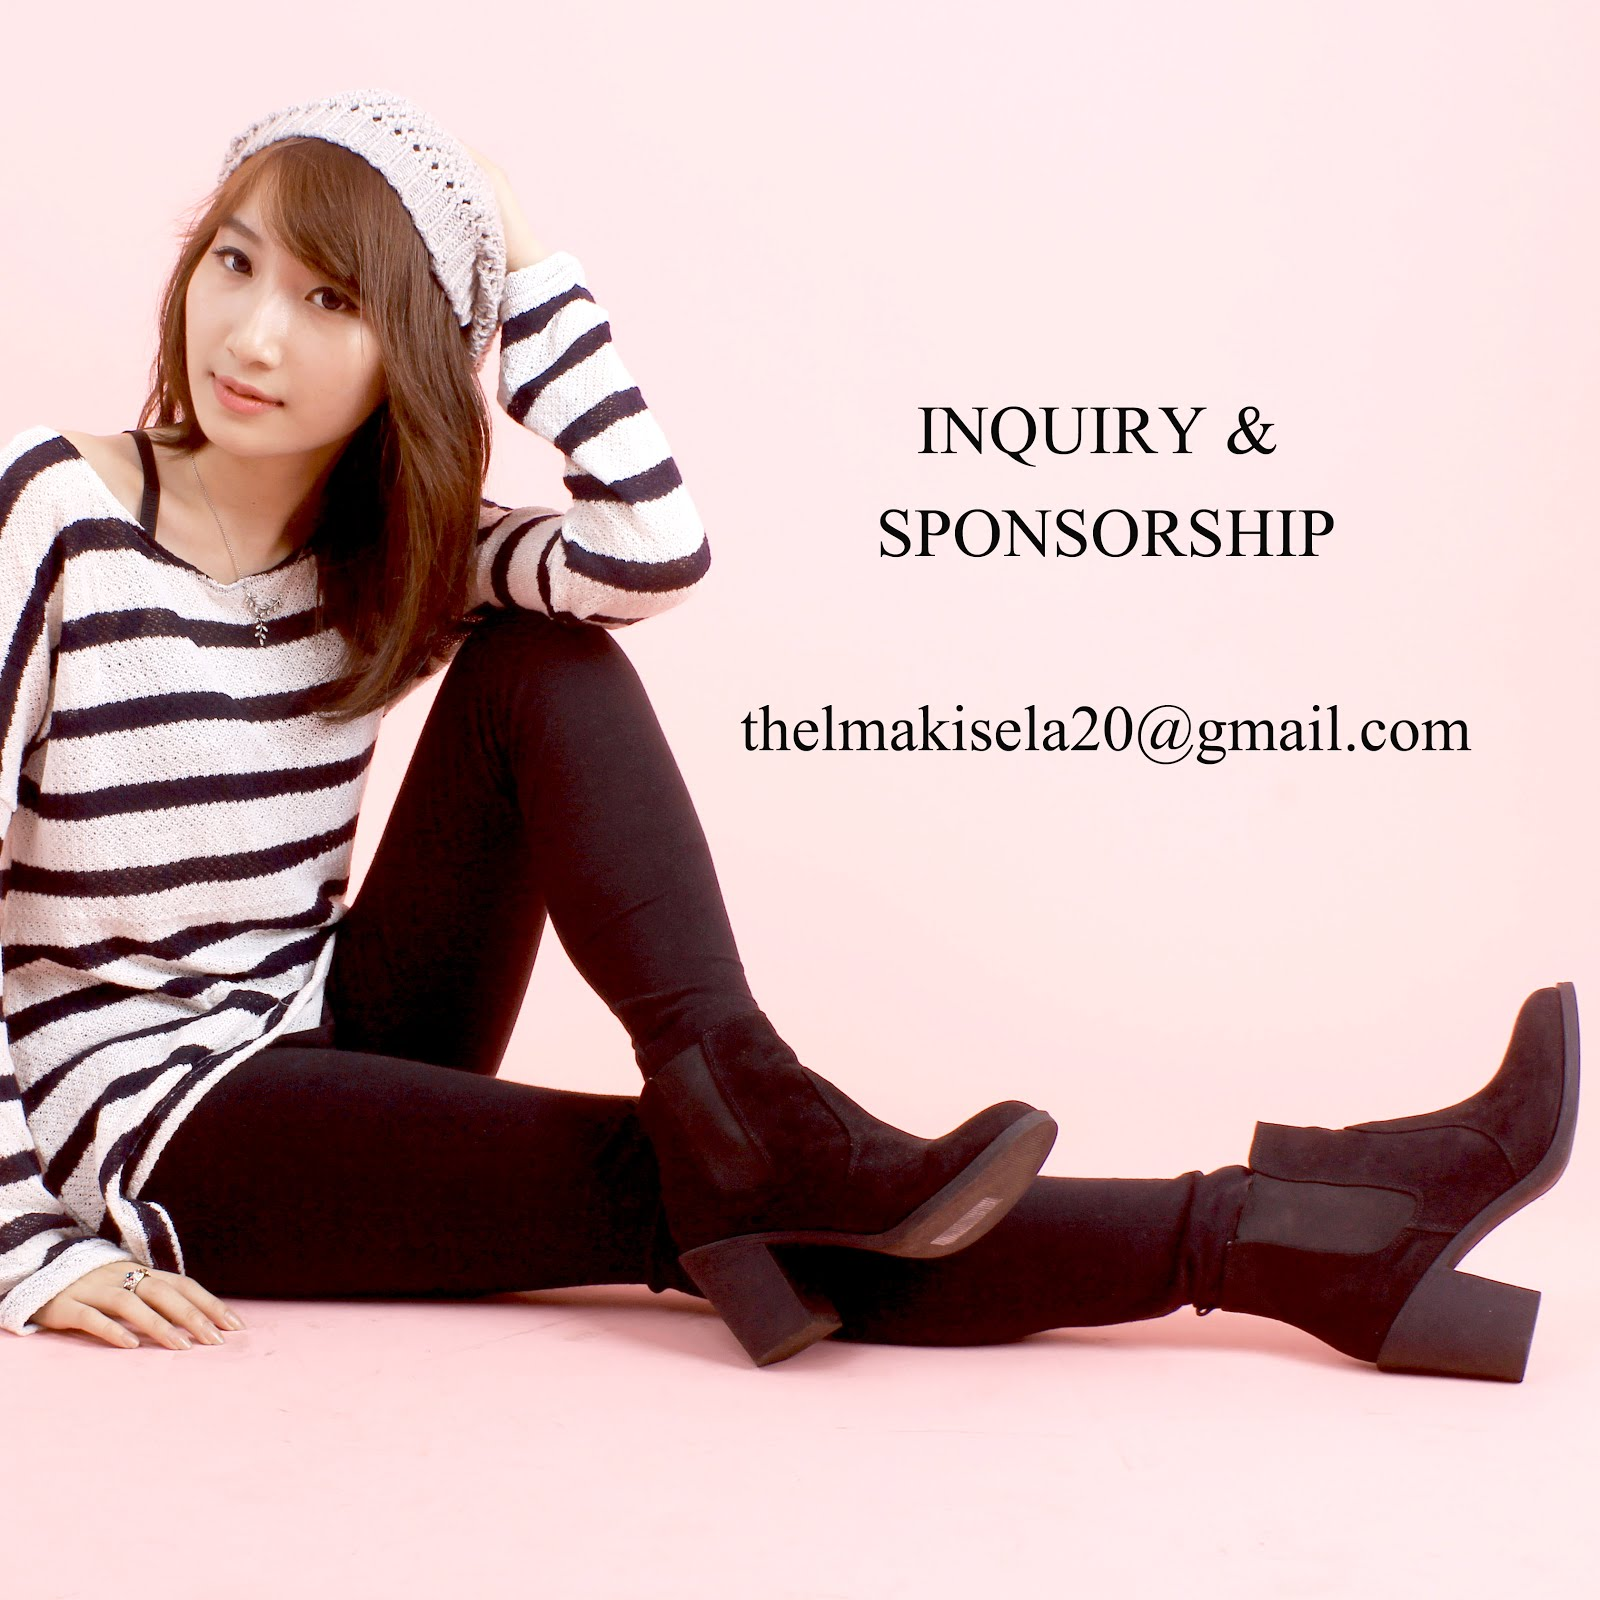 Inquiry & Sponsorship